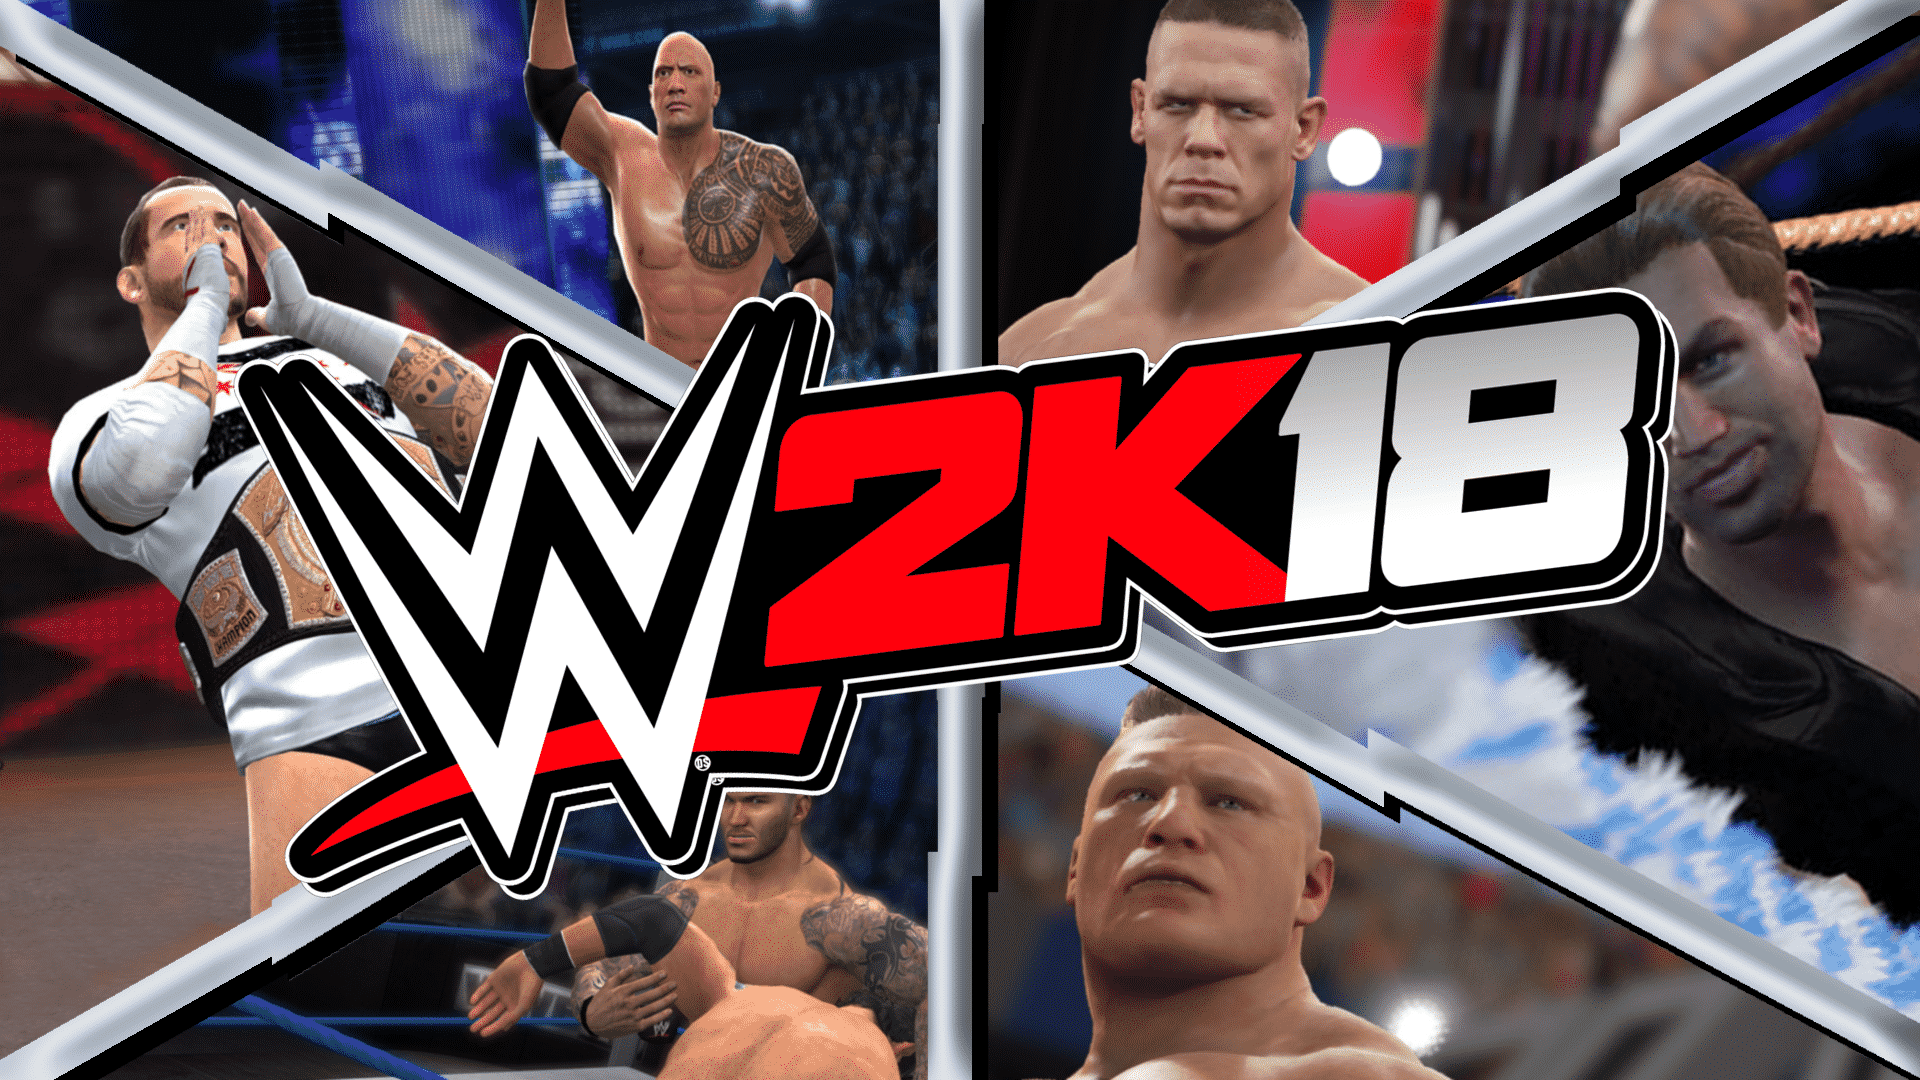 Pin by Jason Purcell on WWE 2k18 download PC and WWE 2k18 apk | Wwe